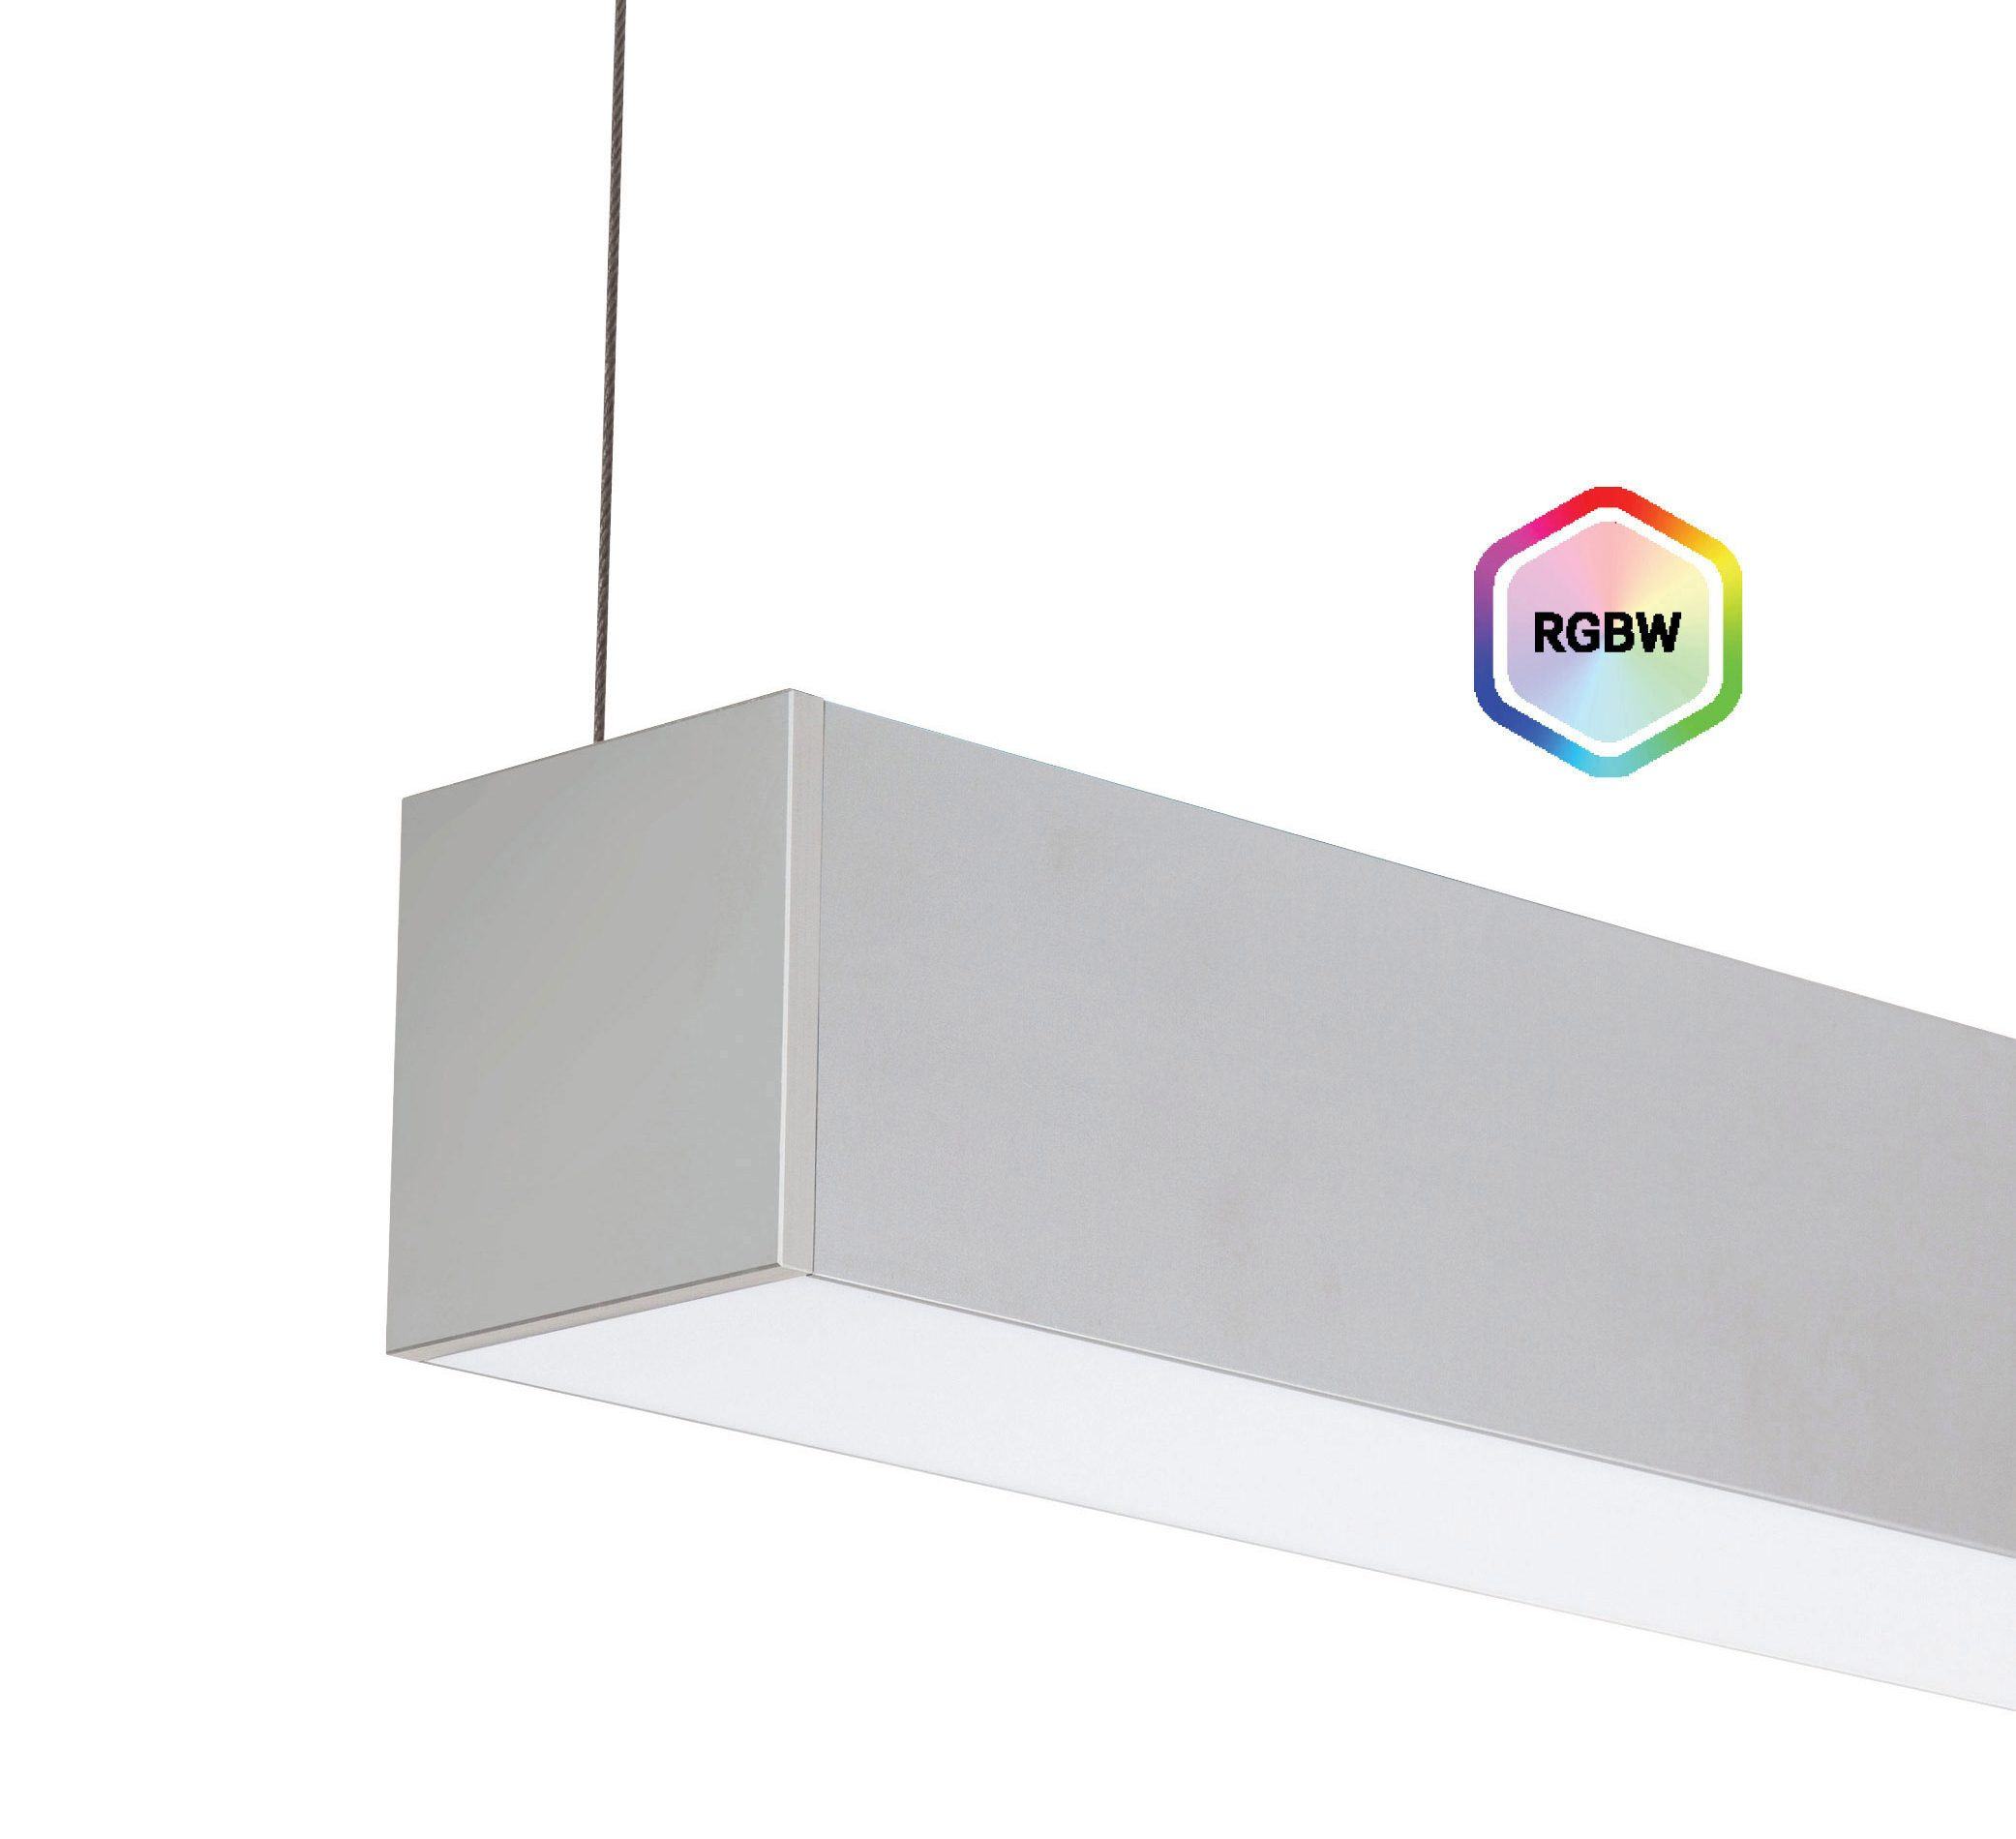 Birchwood Lighting Announces Launch of RGBW Capabilities in Kelsey and Jake 325 Luminaires